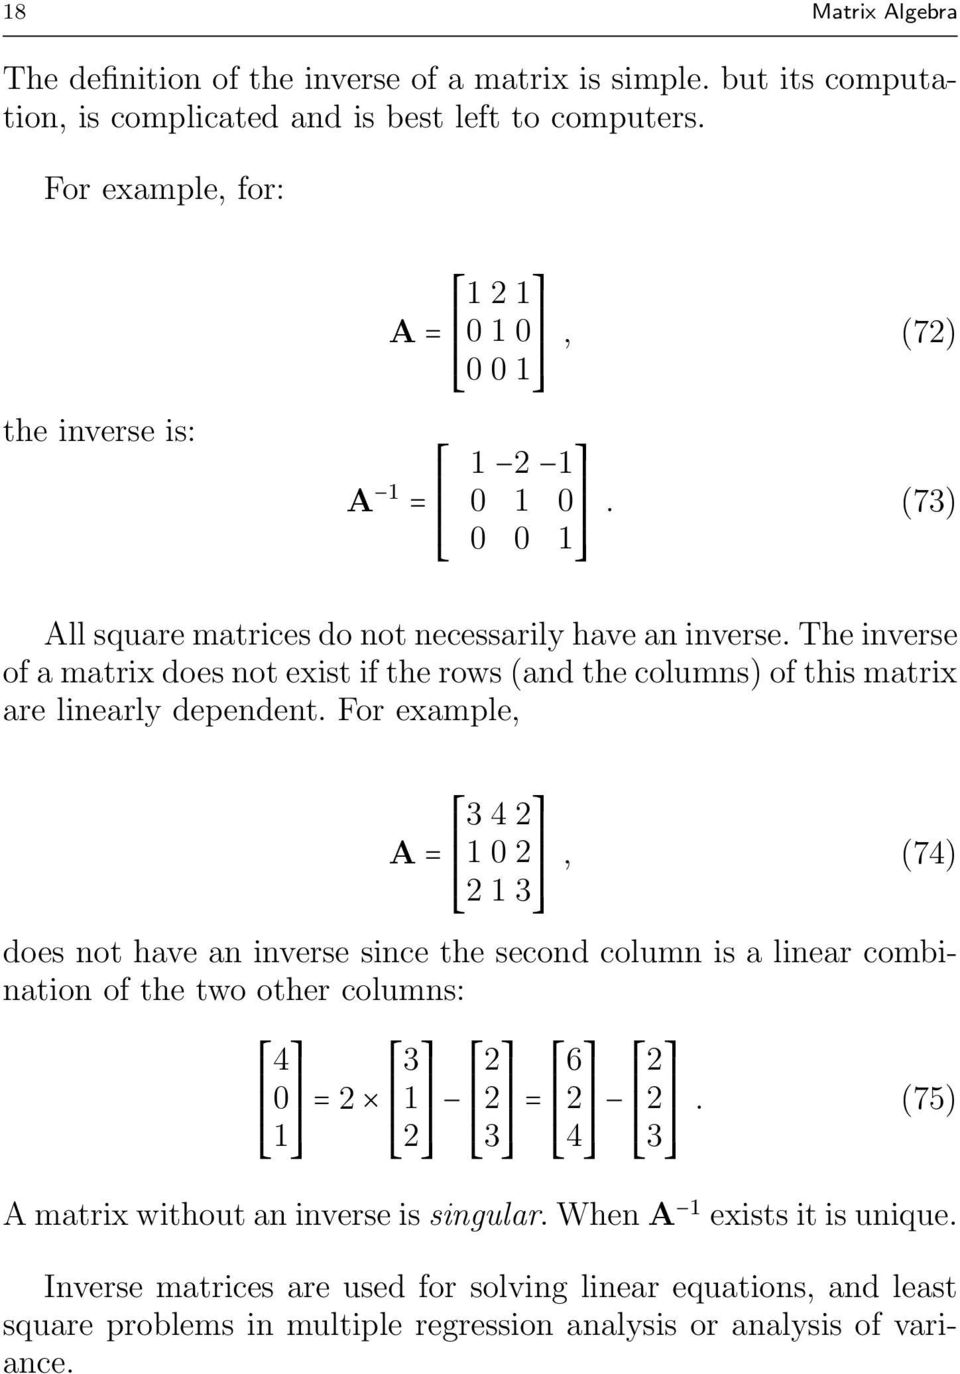 The inverse of a matrix does not exist if the rows (and the columns) of this matrix are linearly dependent.